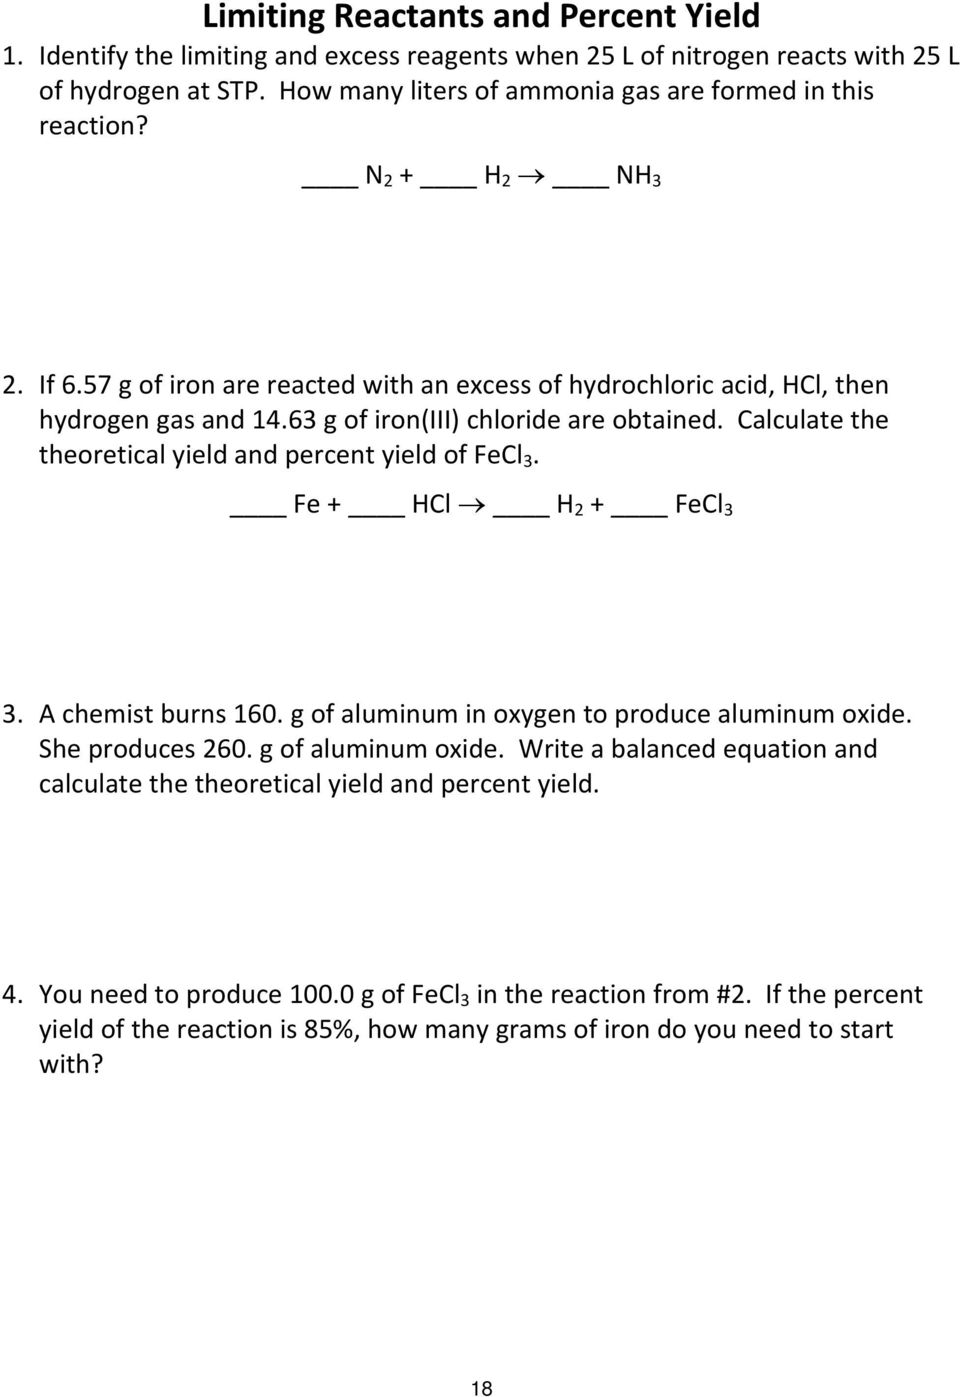 Calculate the theoretical yield and percent yield of FeCl 3. Fe + HCl H 2 + FeCl 3 3. A chemist burns 160. g of aluminum in oxygen to produce aluminum oxide. She produces 260. g of aluminum oxide.